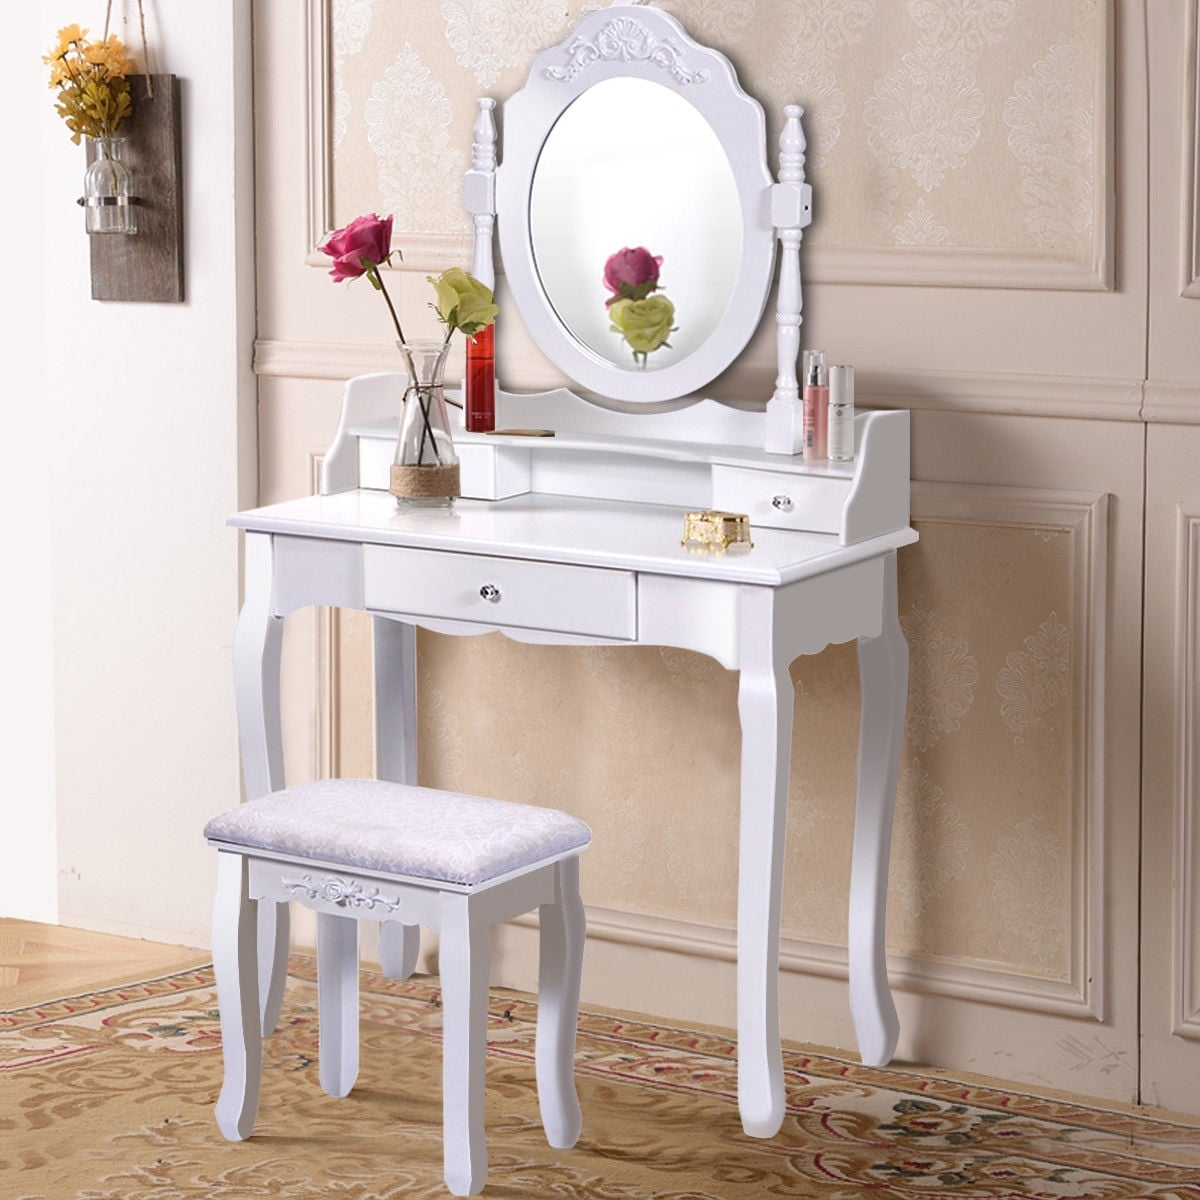 Costway White Vanity Wood Makeup Dressing Table Stool Set bathroom With Mirror + 3 Drawer